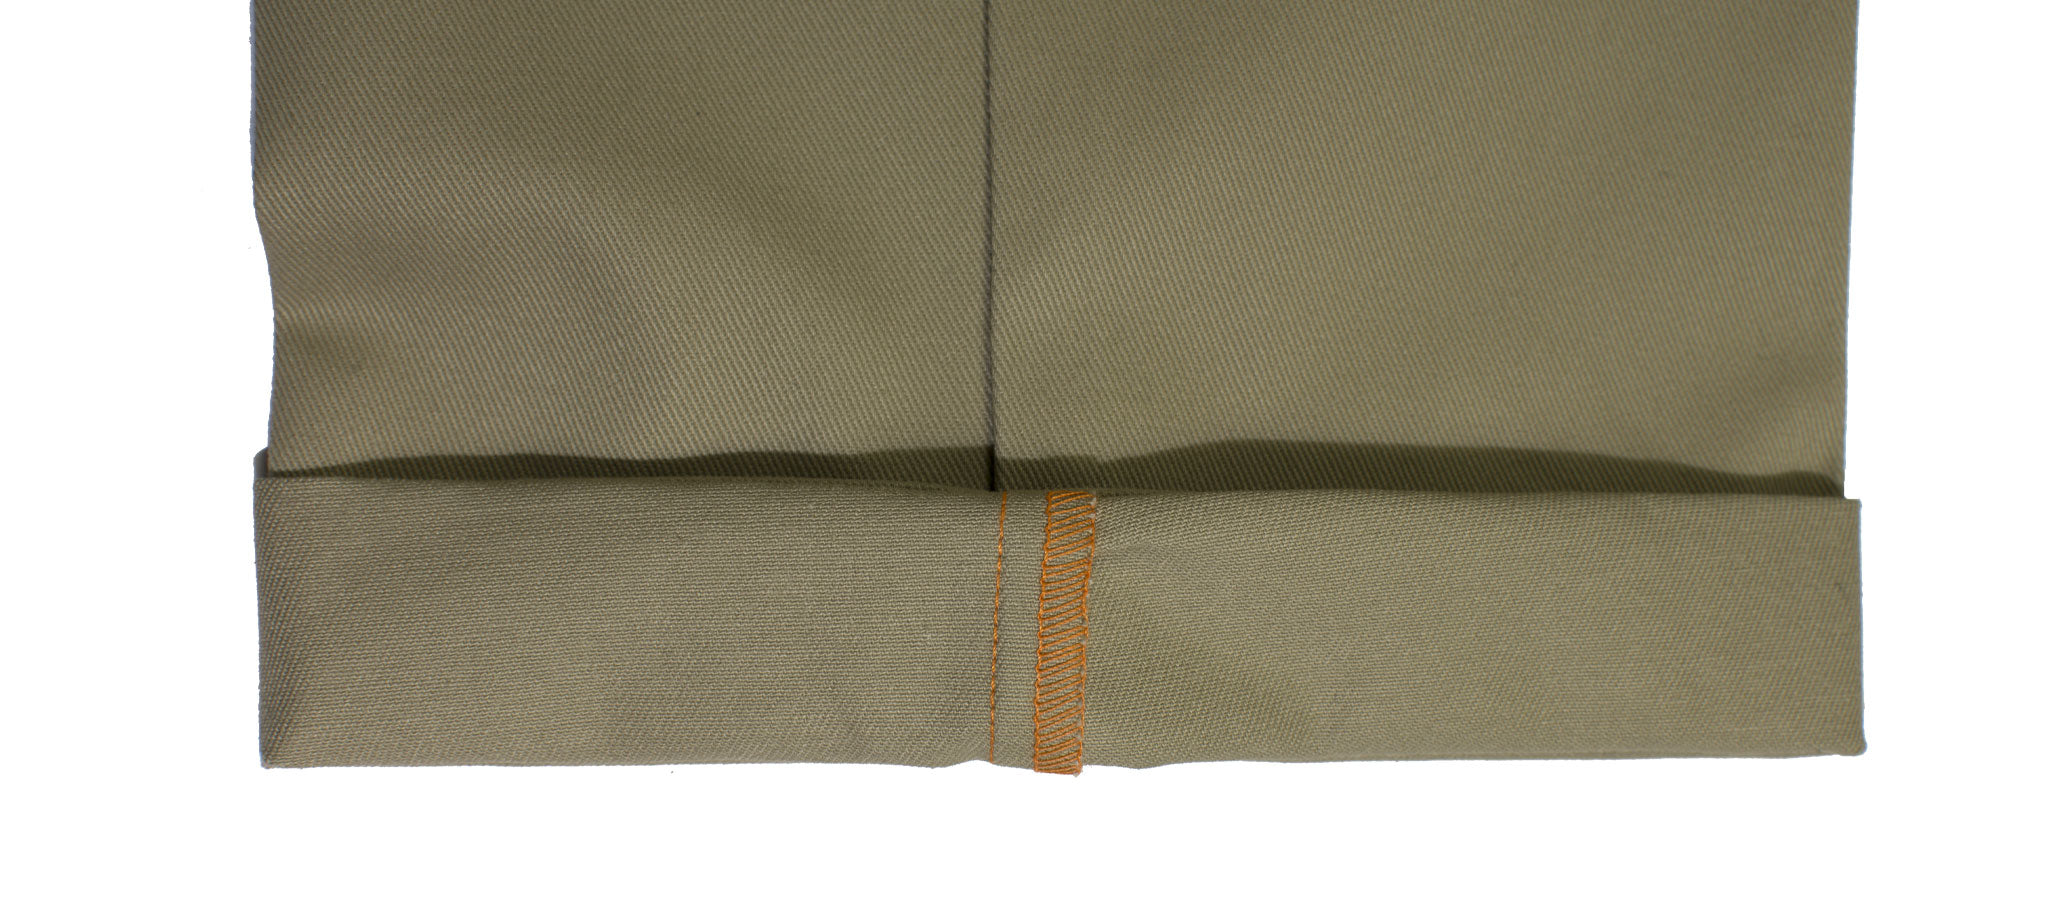 The 6 Point Pant | Blaze Overlock Stitching